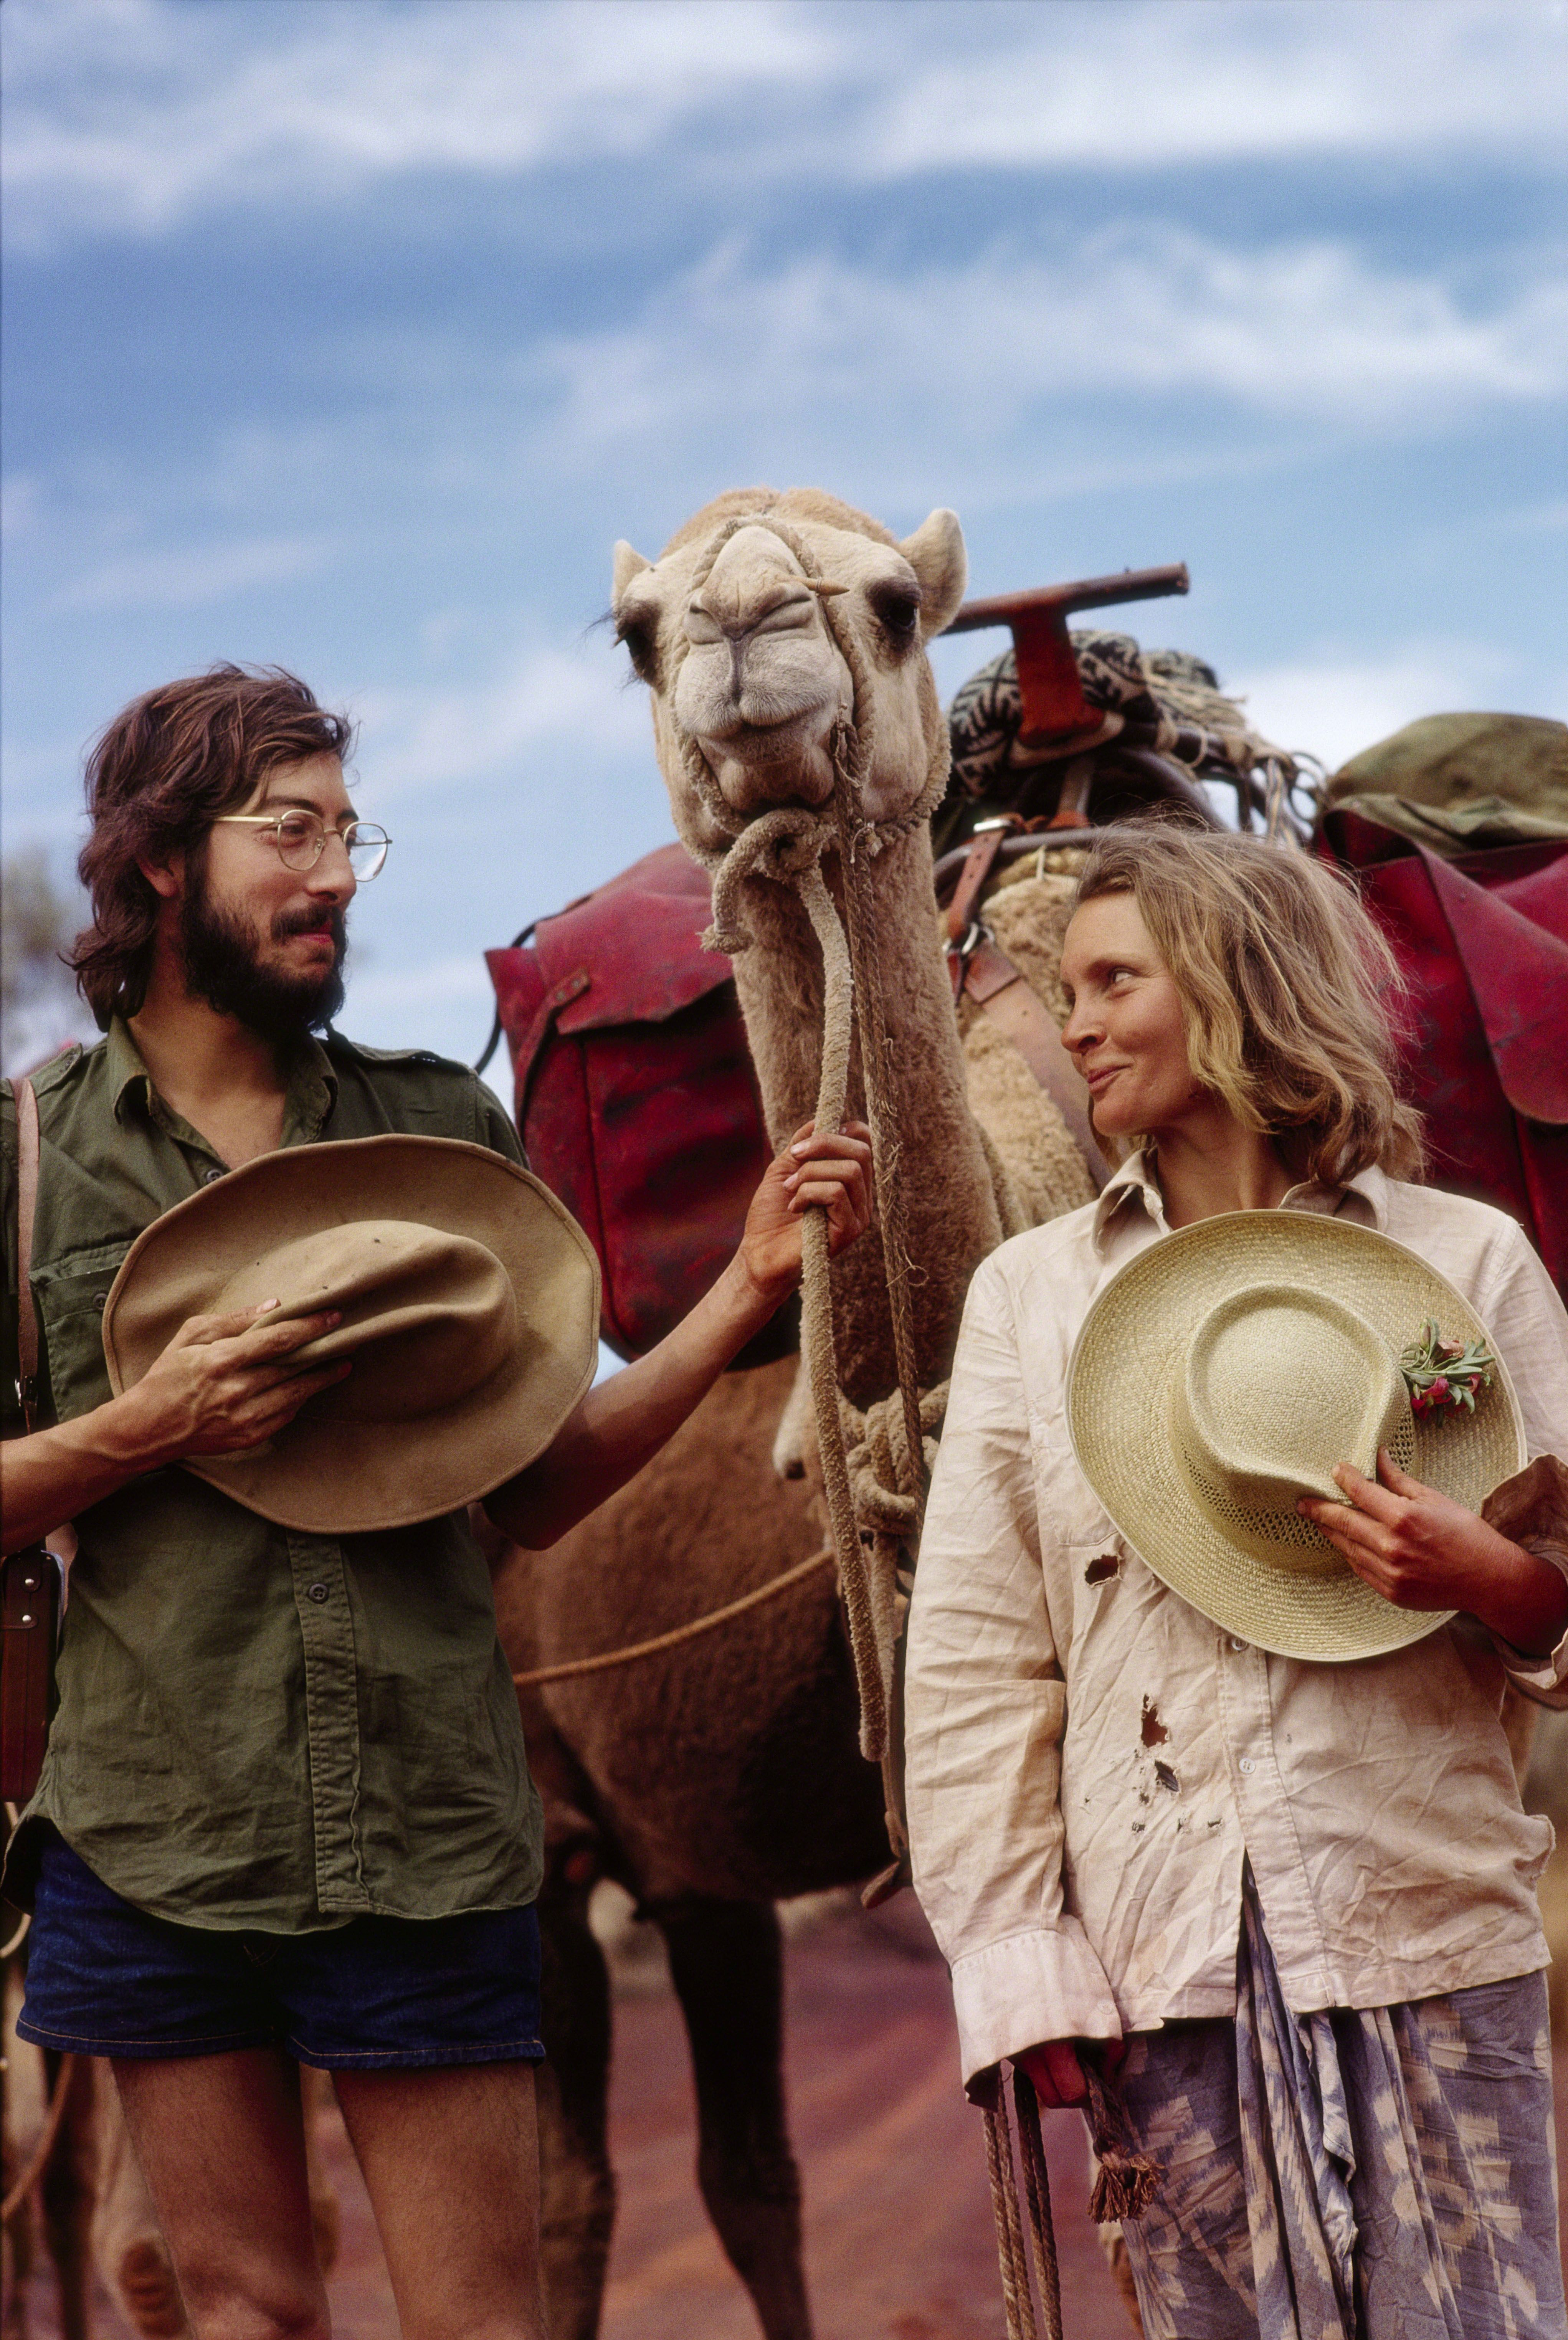 robyn davidson rick smolan relationship problems